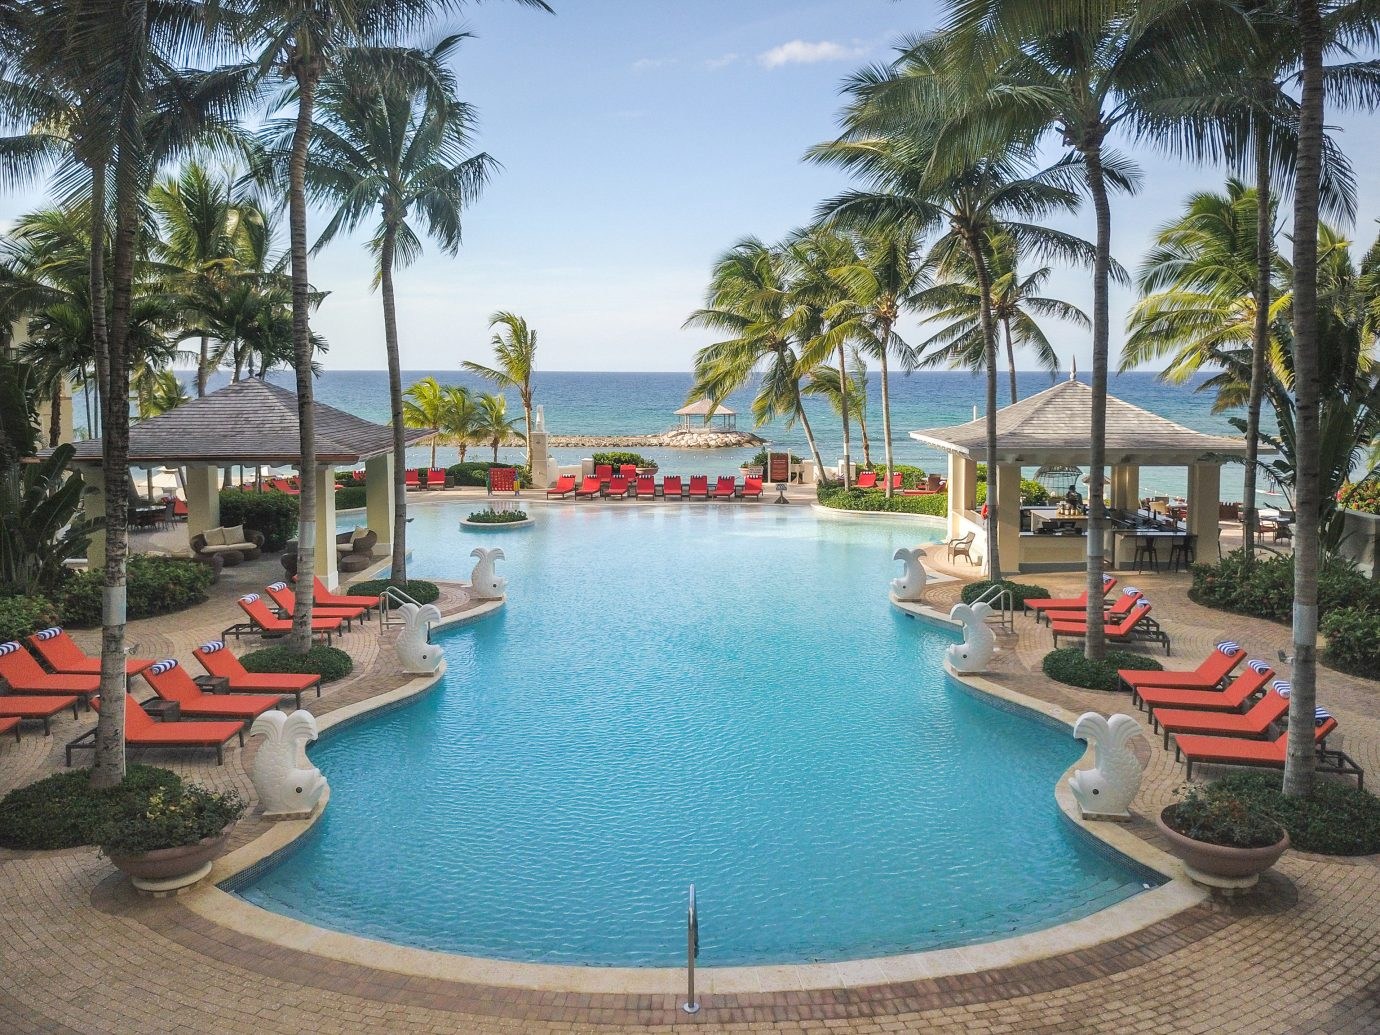 All-Inclusive Resorts Family Travel Hotels Resort swimming pool leisure property resort town palm tree vacation real estate arecales tourism tropics hotel estate caribbean tree recreation